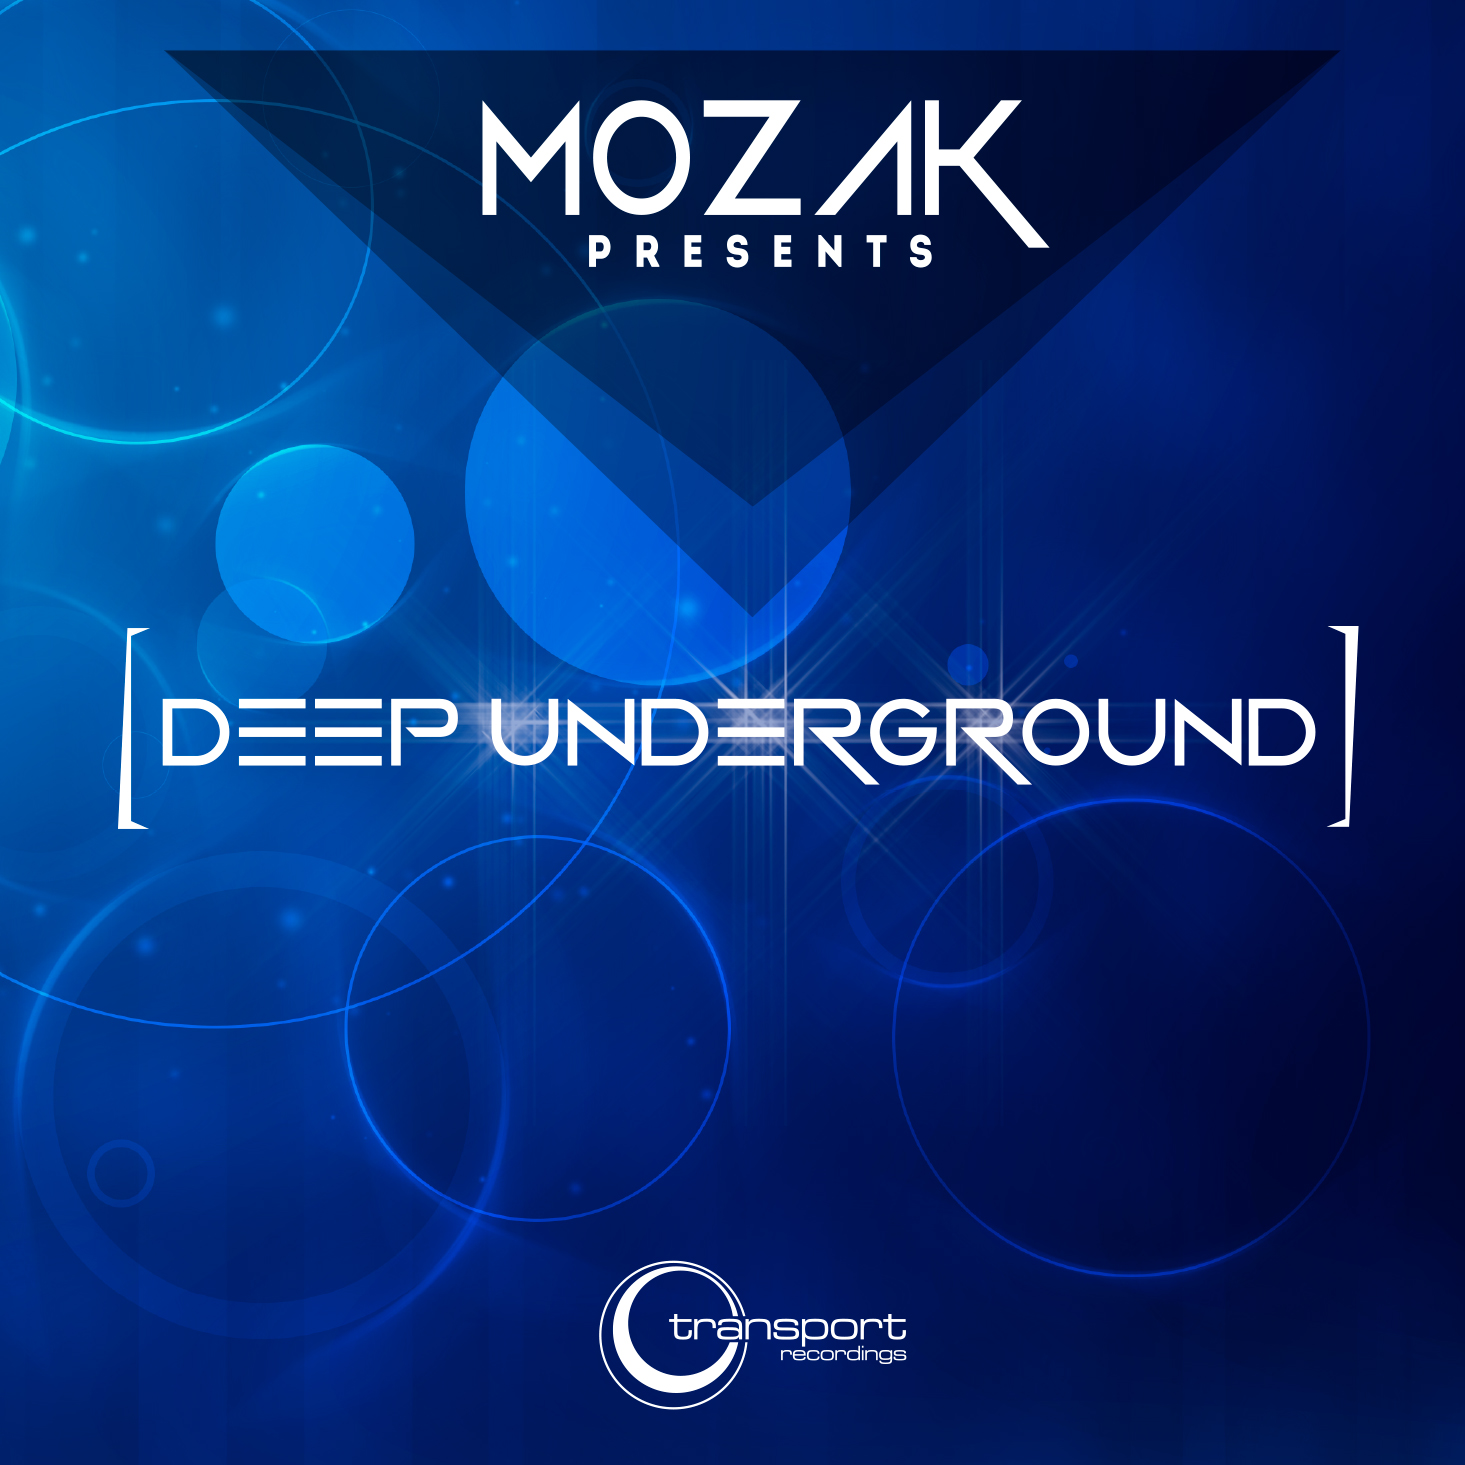 Mozak presents Deep Underground